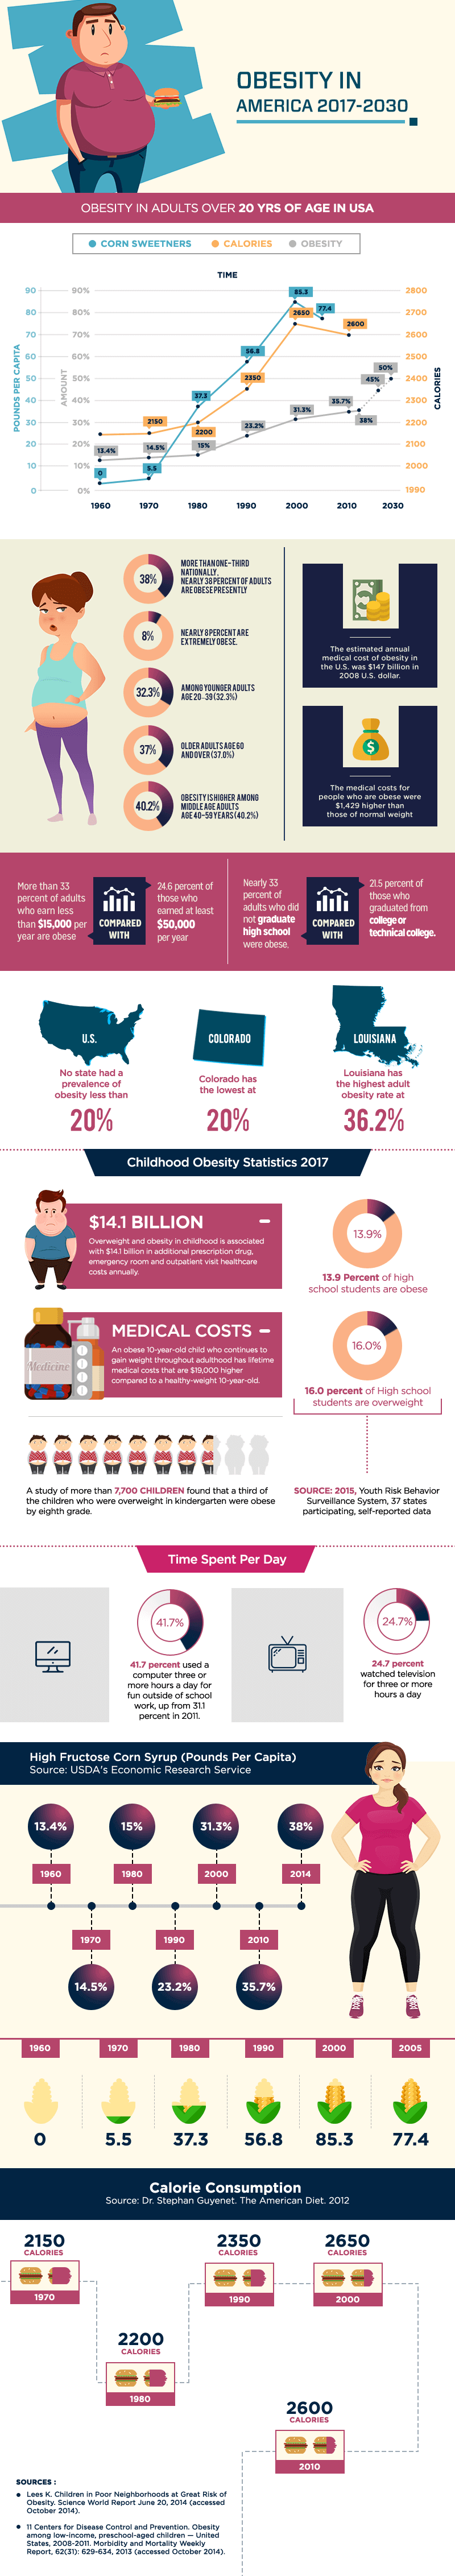 Obesity's Dangerous Growth Record in the United States - Infographic